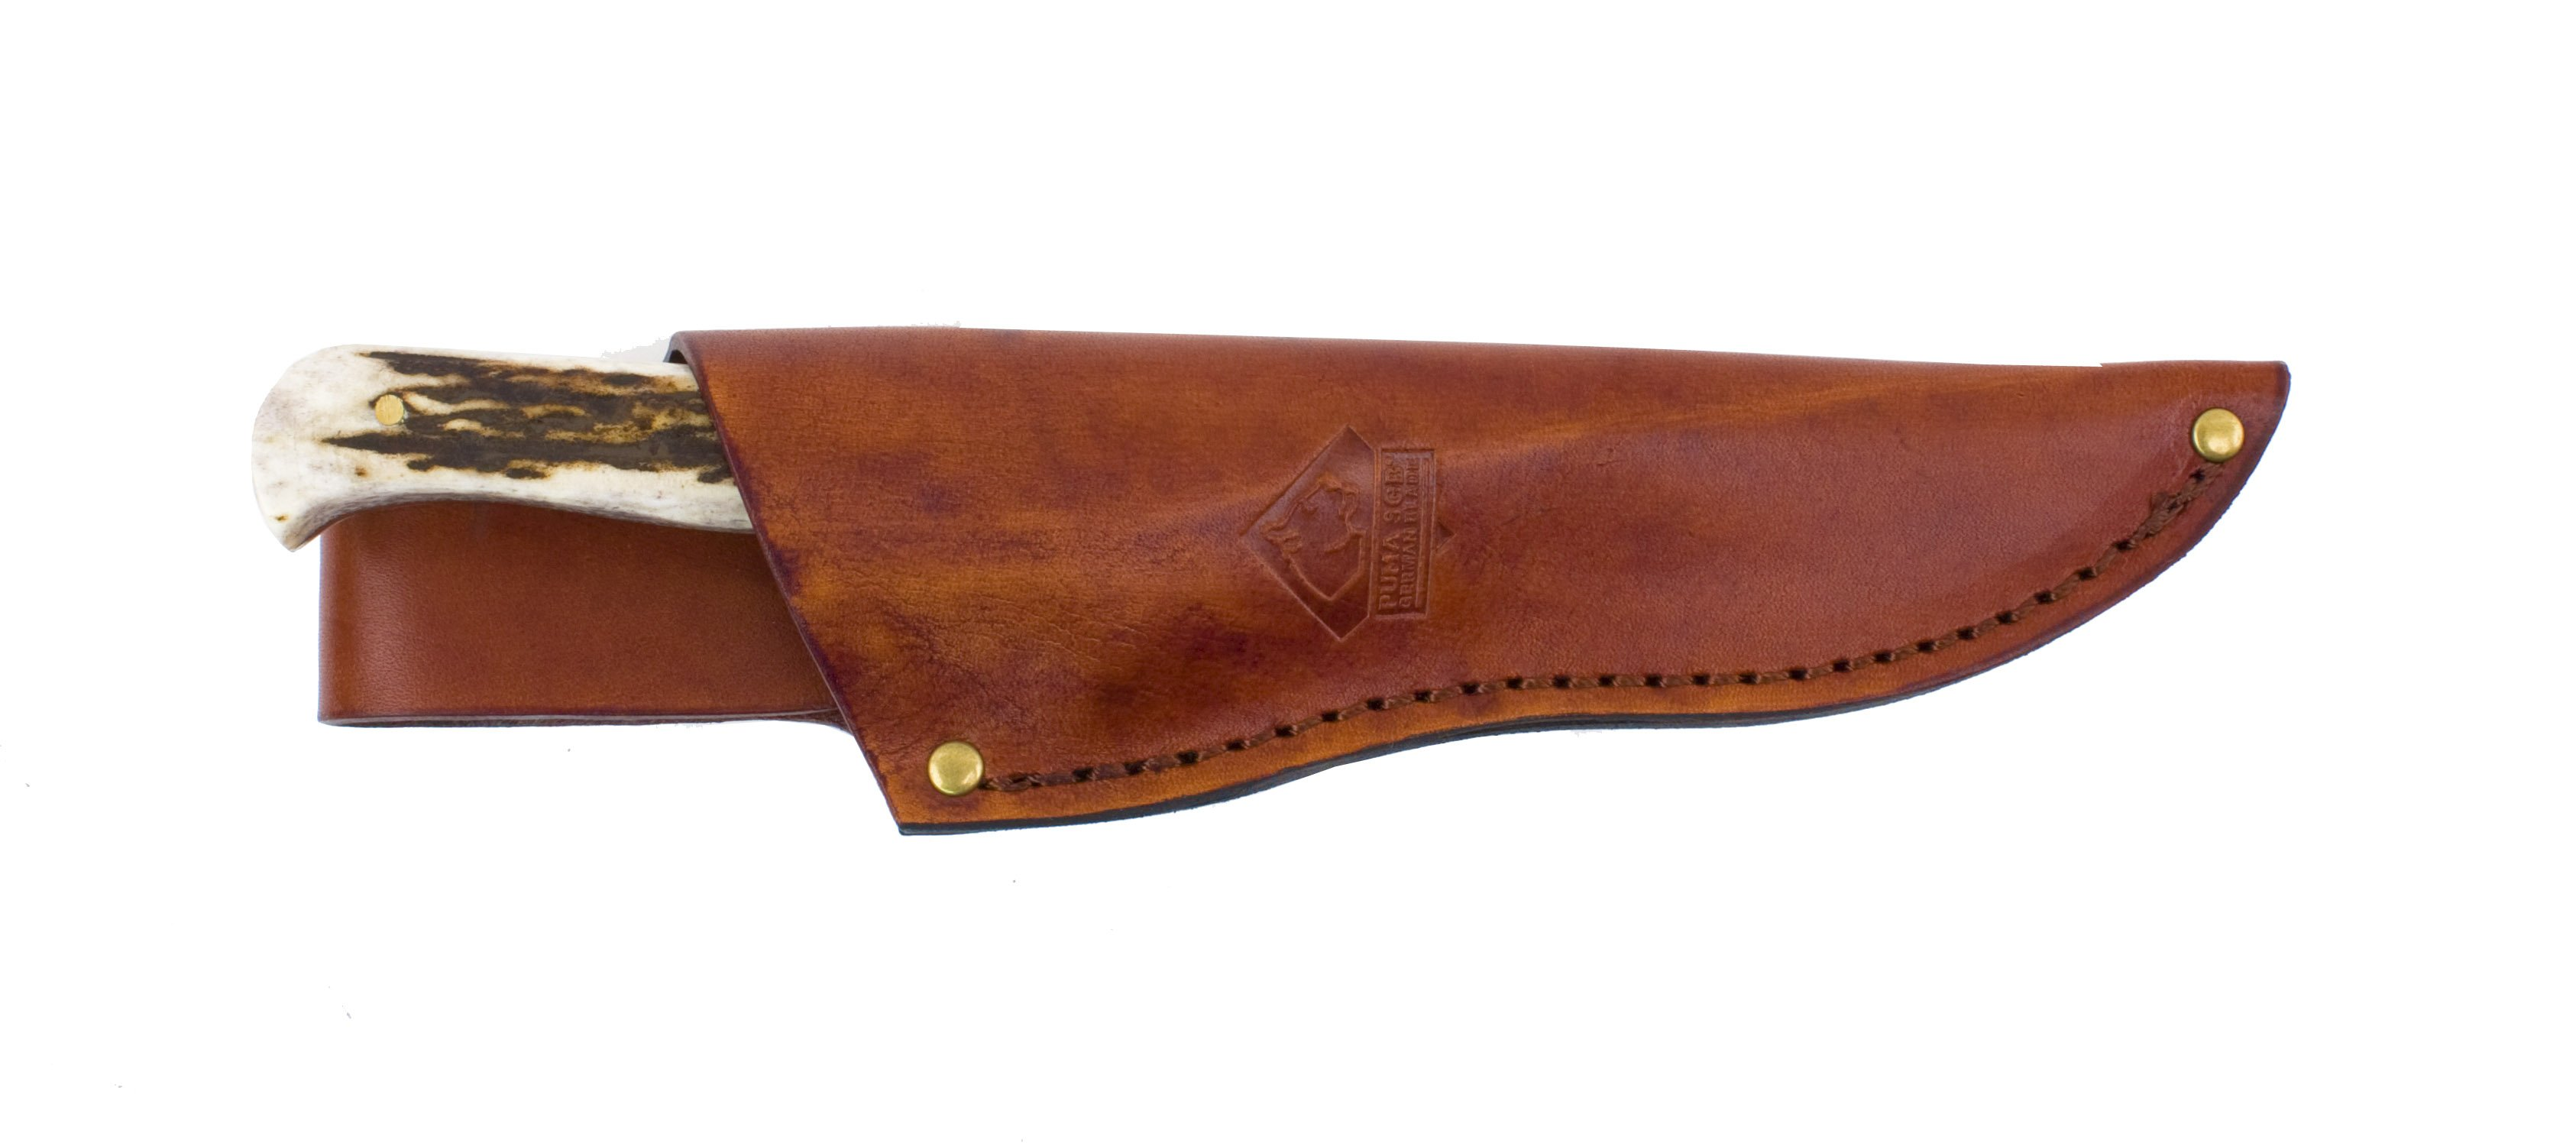 Puma SGB Skinner Knife Stag Handle with Leather Sheath 6116393L - Australian Tactical Precision